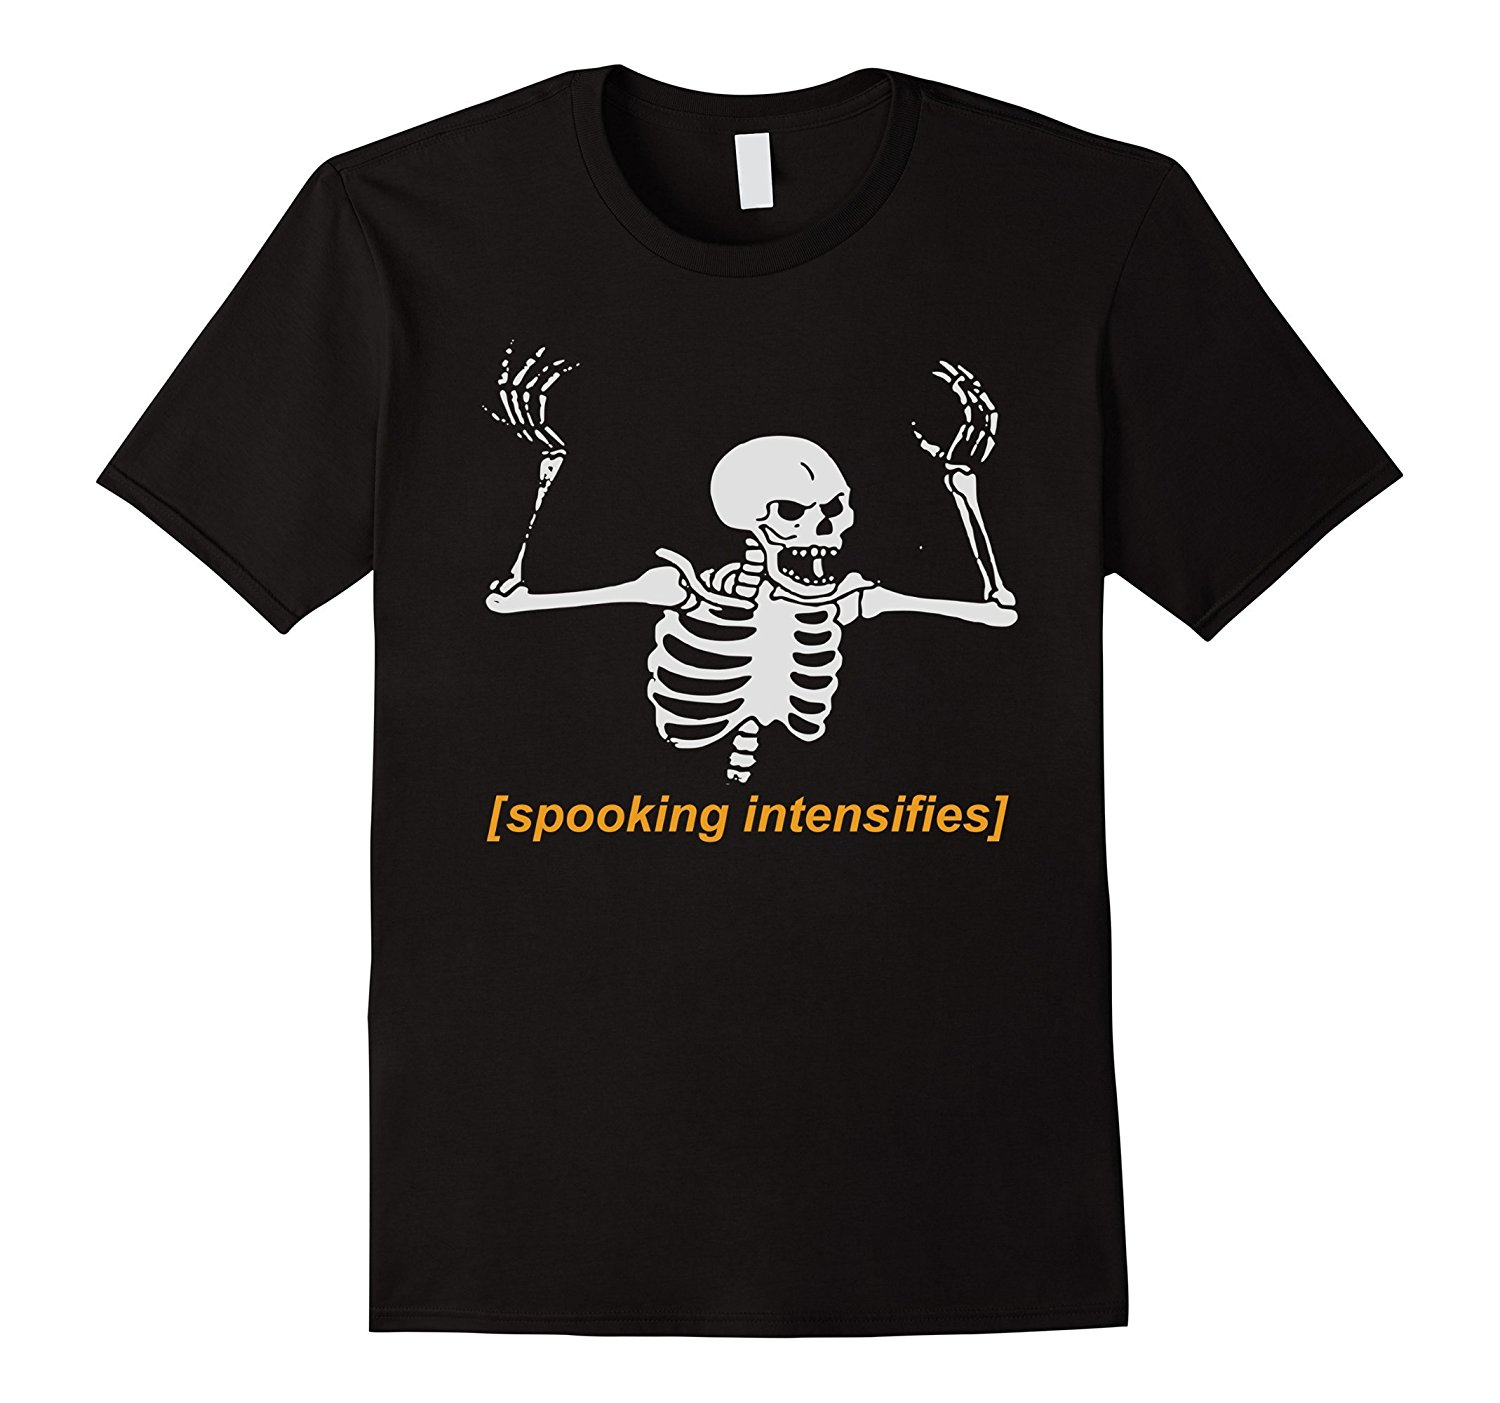 Spooking Intensifies Spooky Scary Skeleton Meme   T  -  Shirt   Hot Summer Men'S   T     Shirt   Fashion